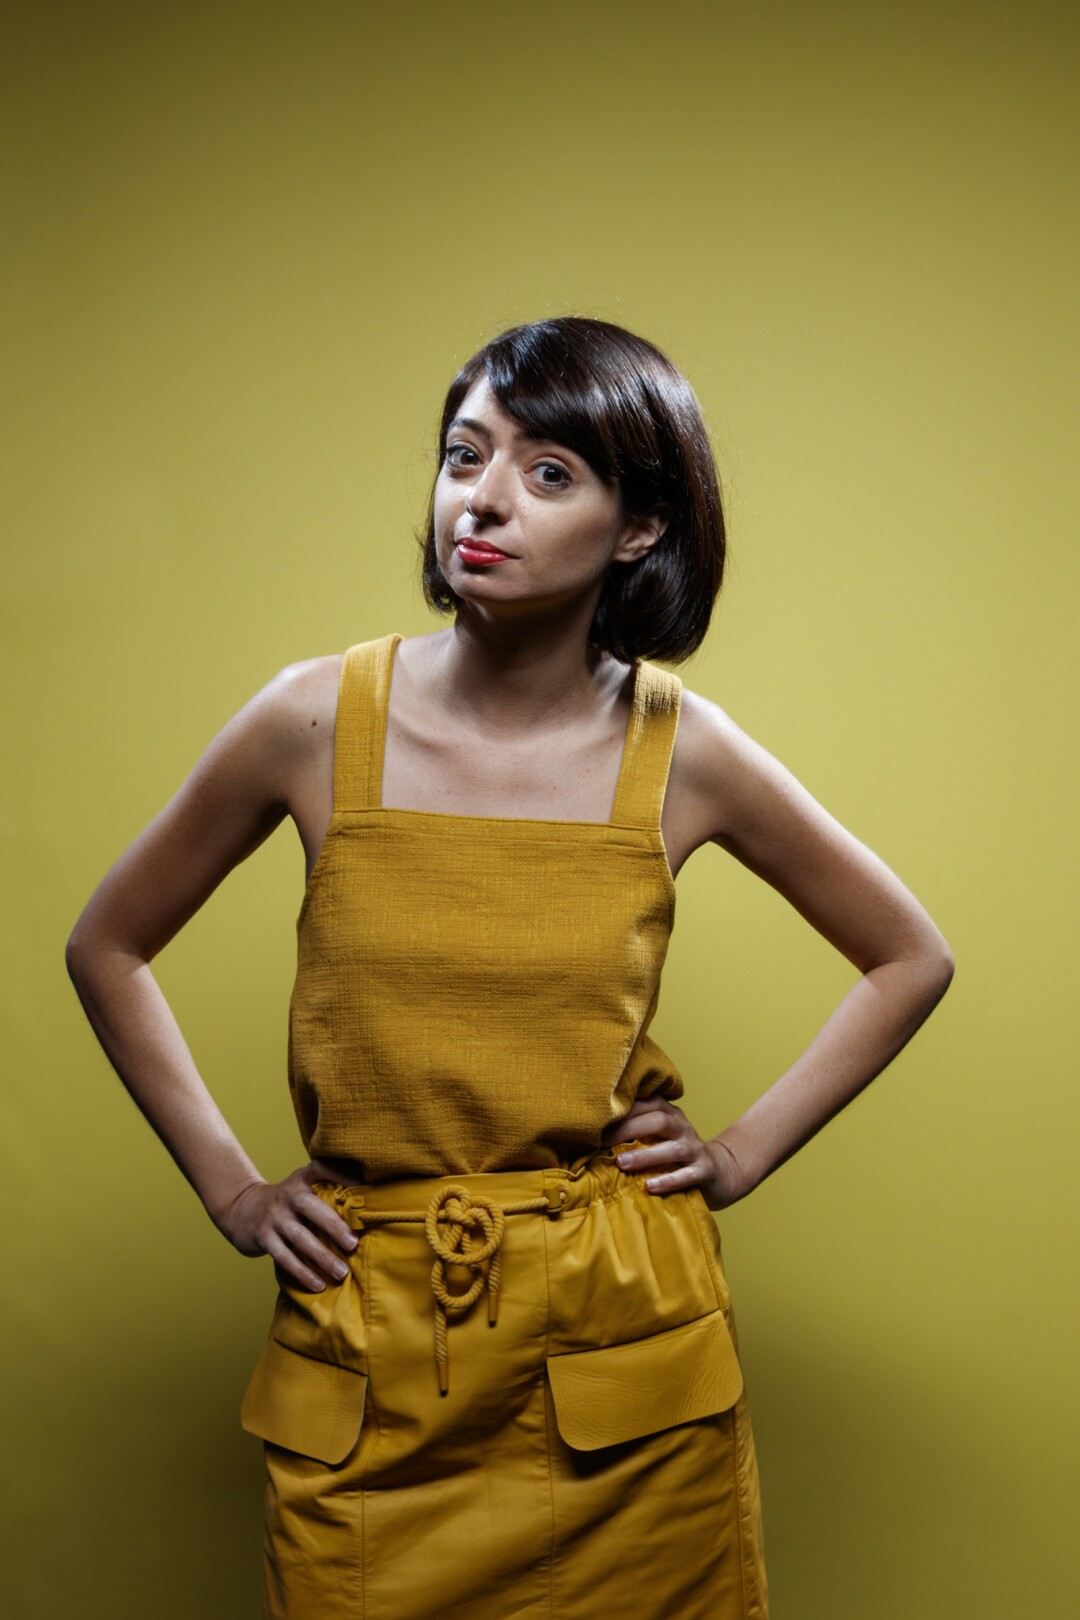 """Kate Micucci, from the television series """"DuckTales,"""" photographed in the L.A. Times photo studio at Comic-Con 2017."""